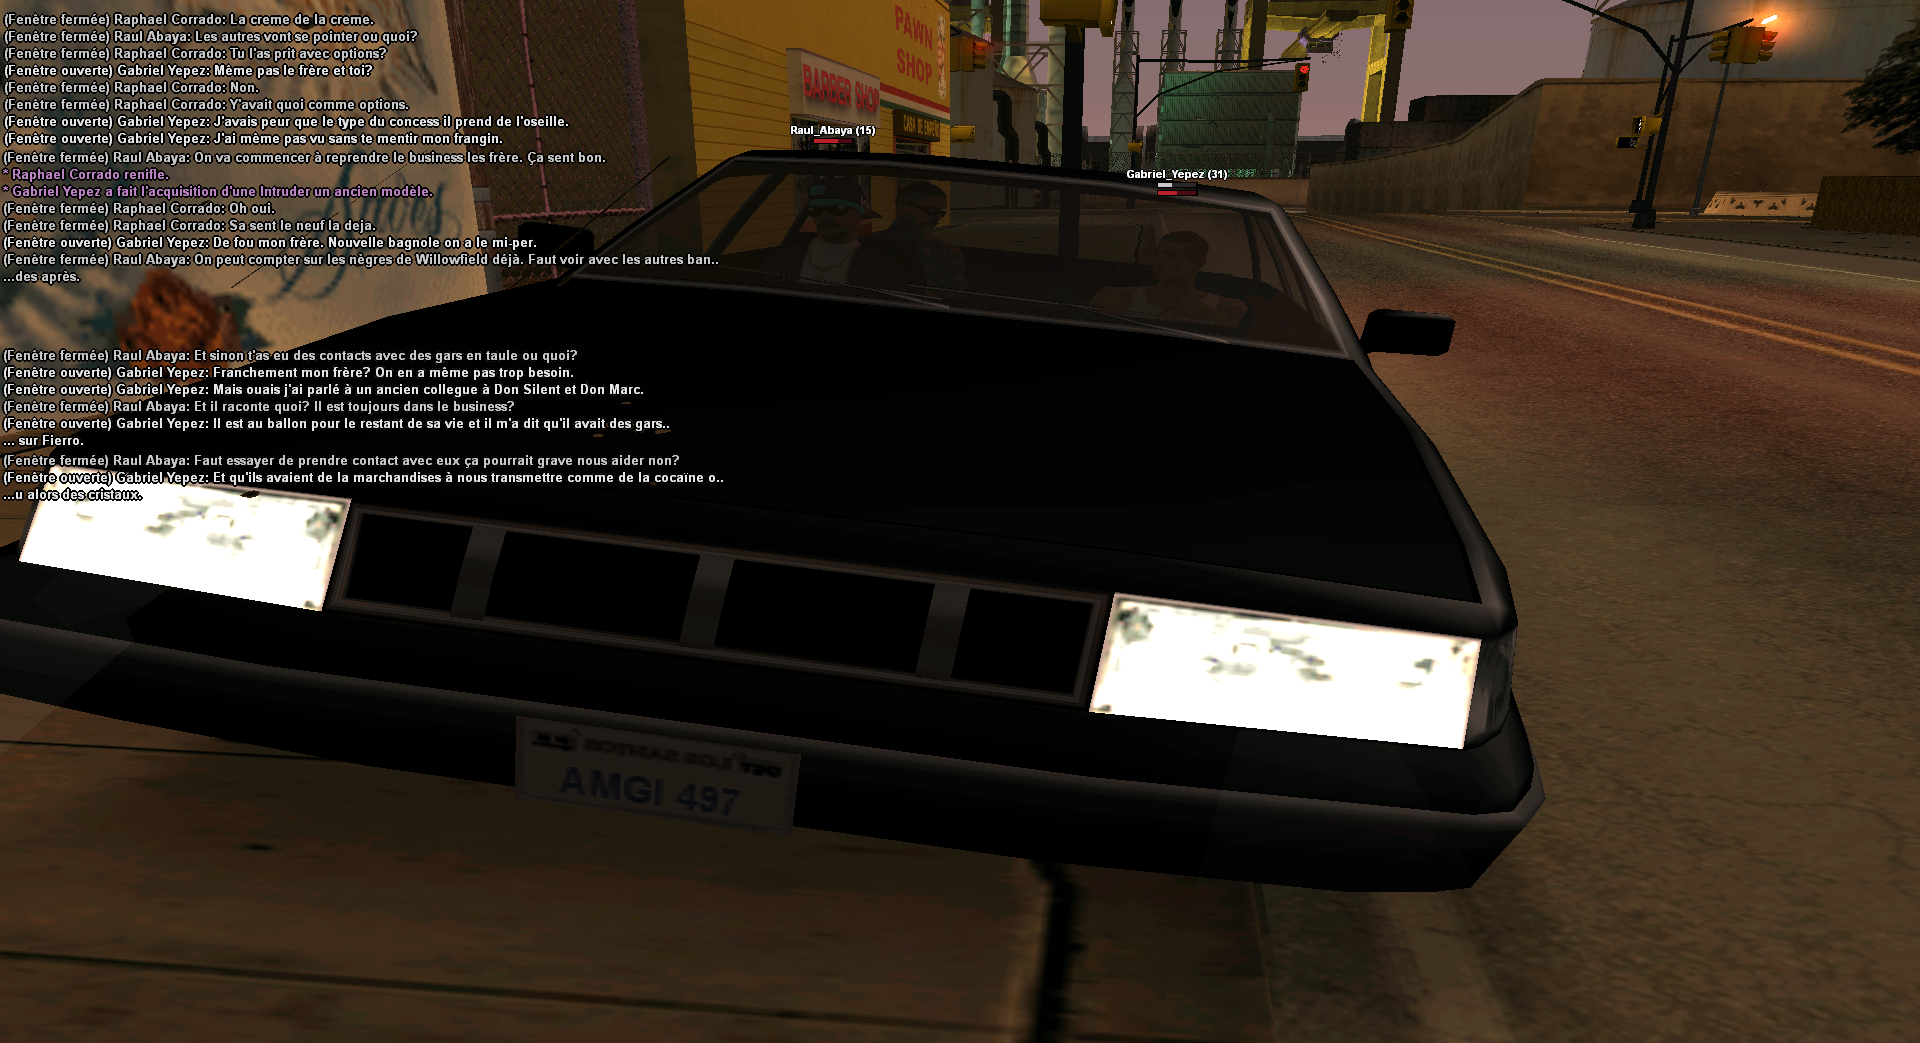 LS: Narcotraficante - Page 12 210314104559261327